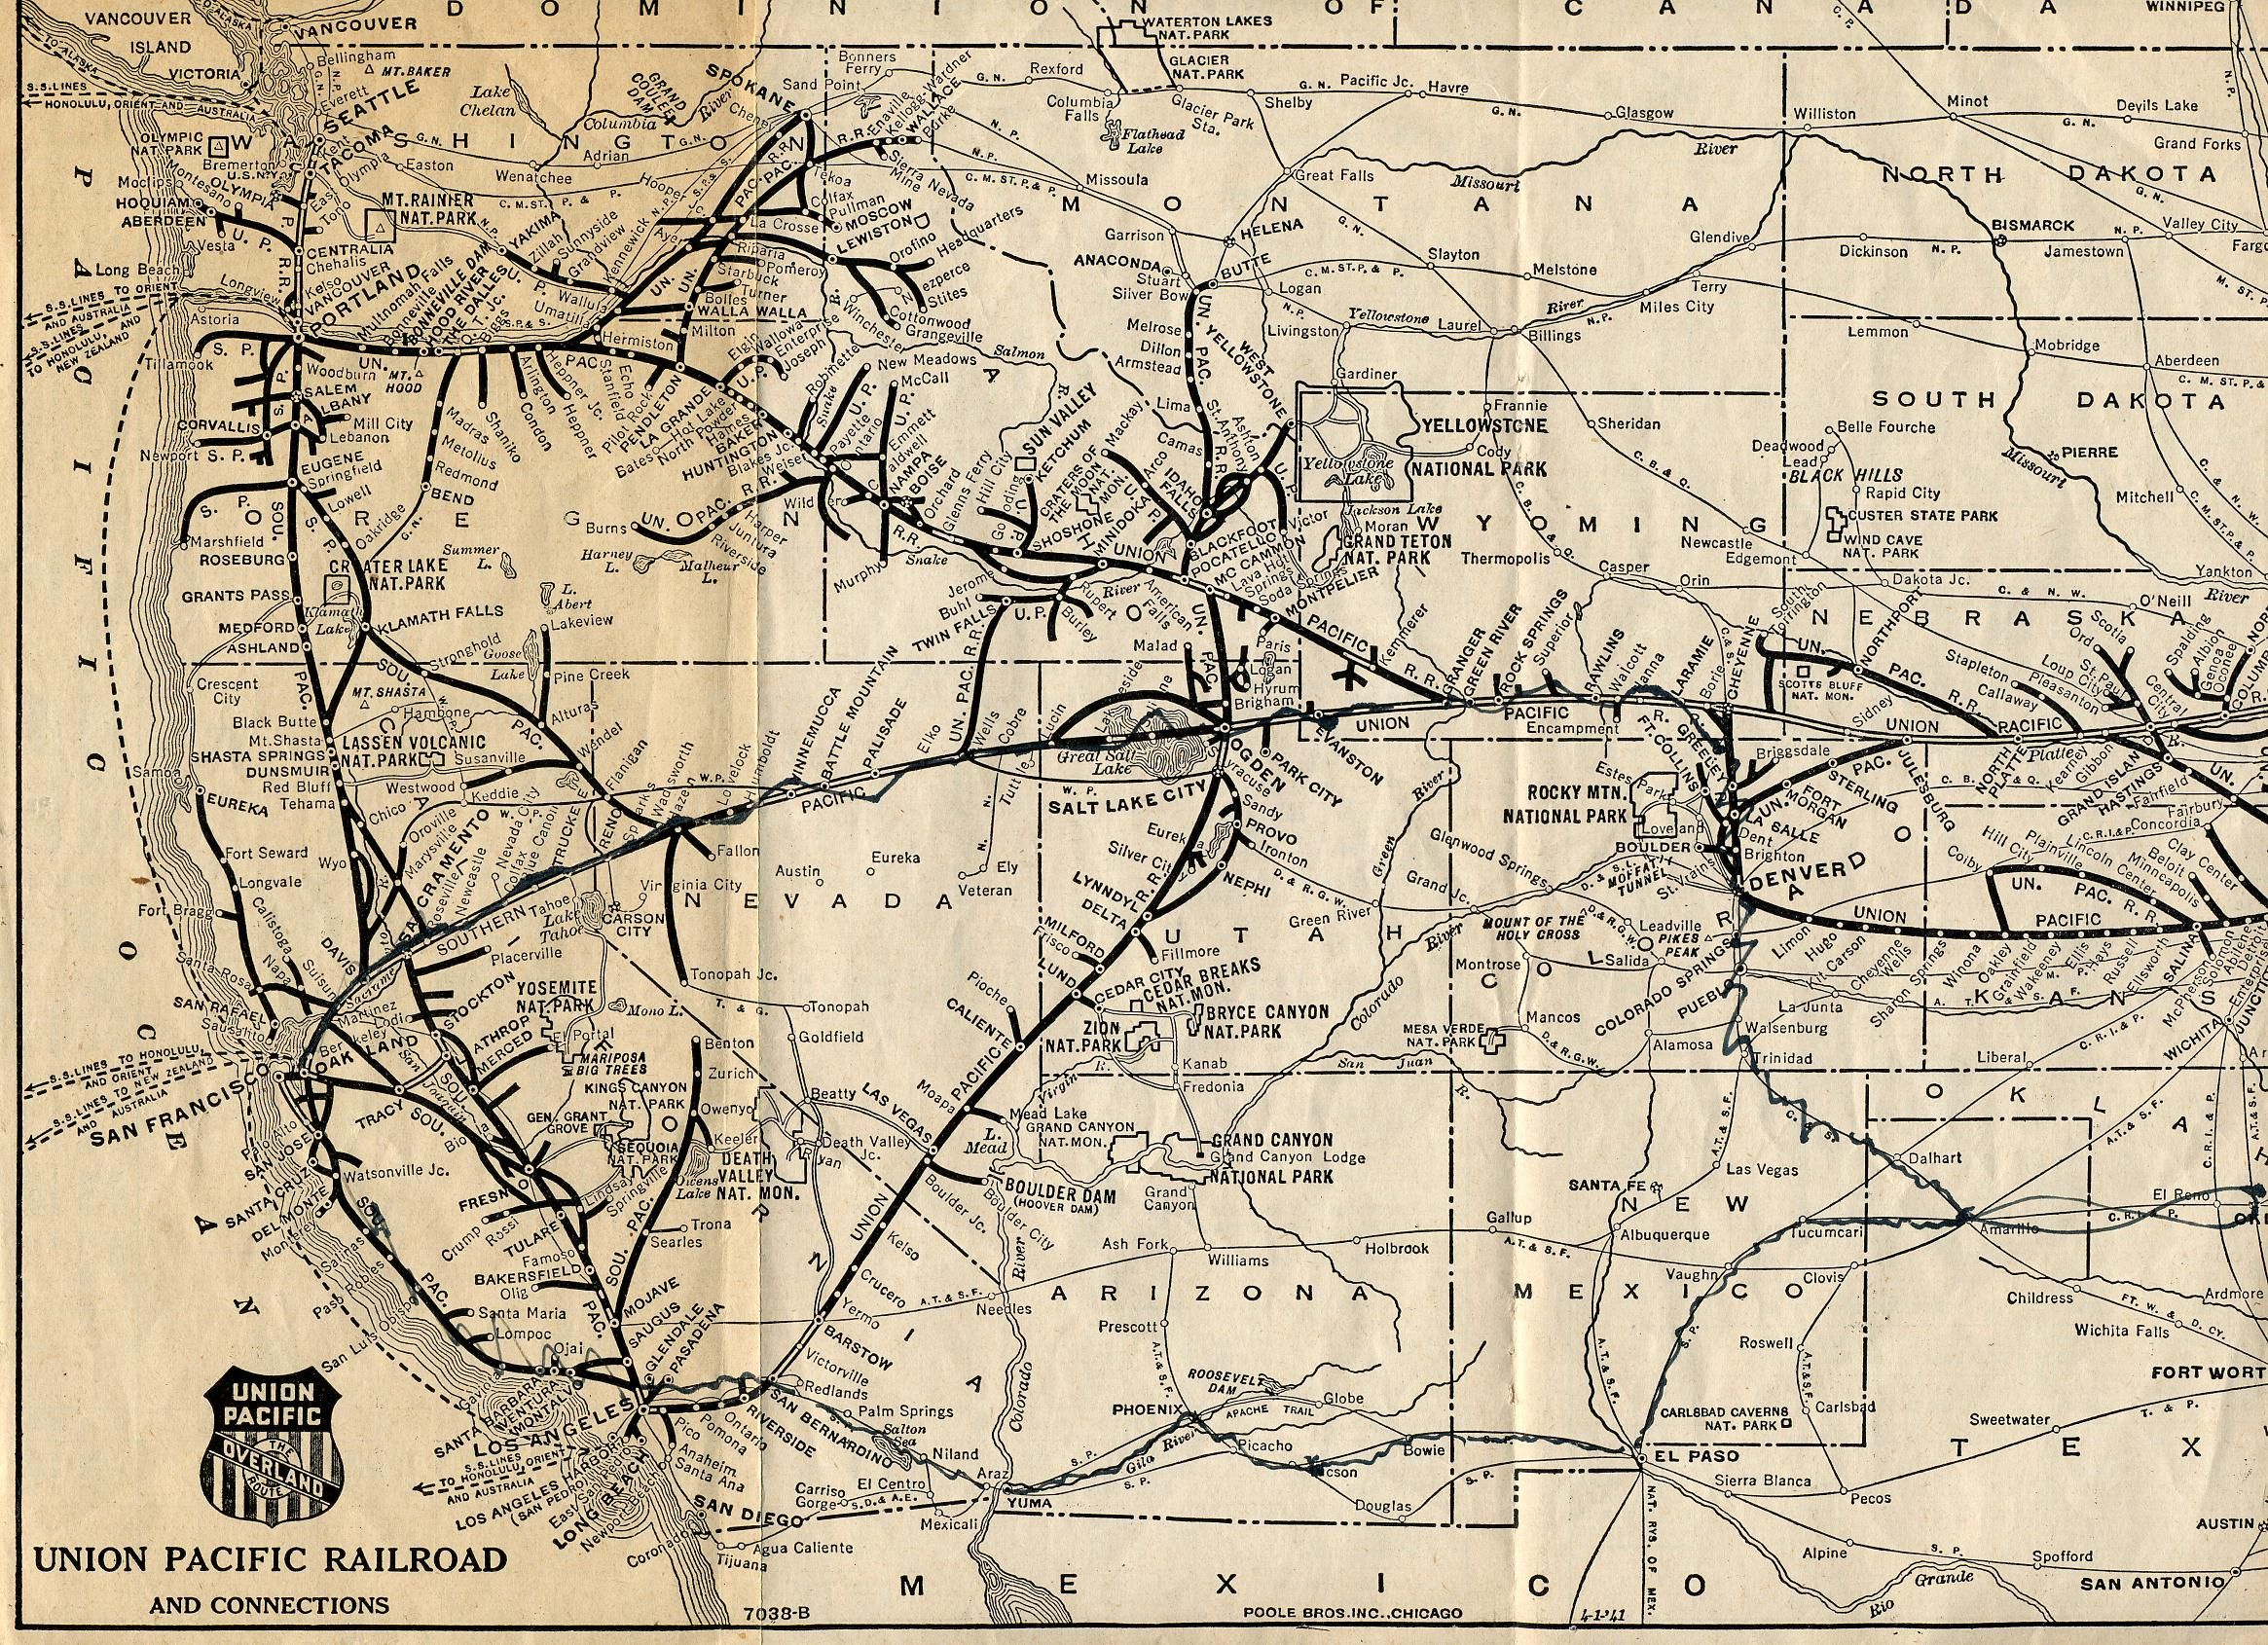 Pacific Union Trains Union Pacific Railroad Map Part See - Railroad map us 1880